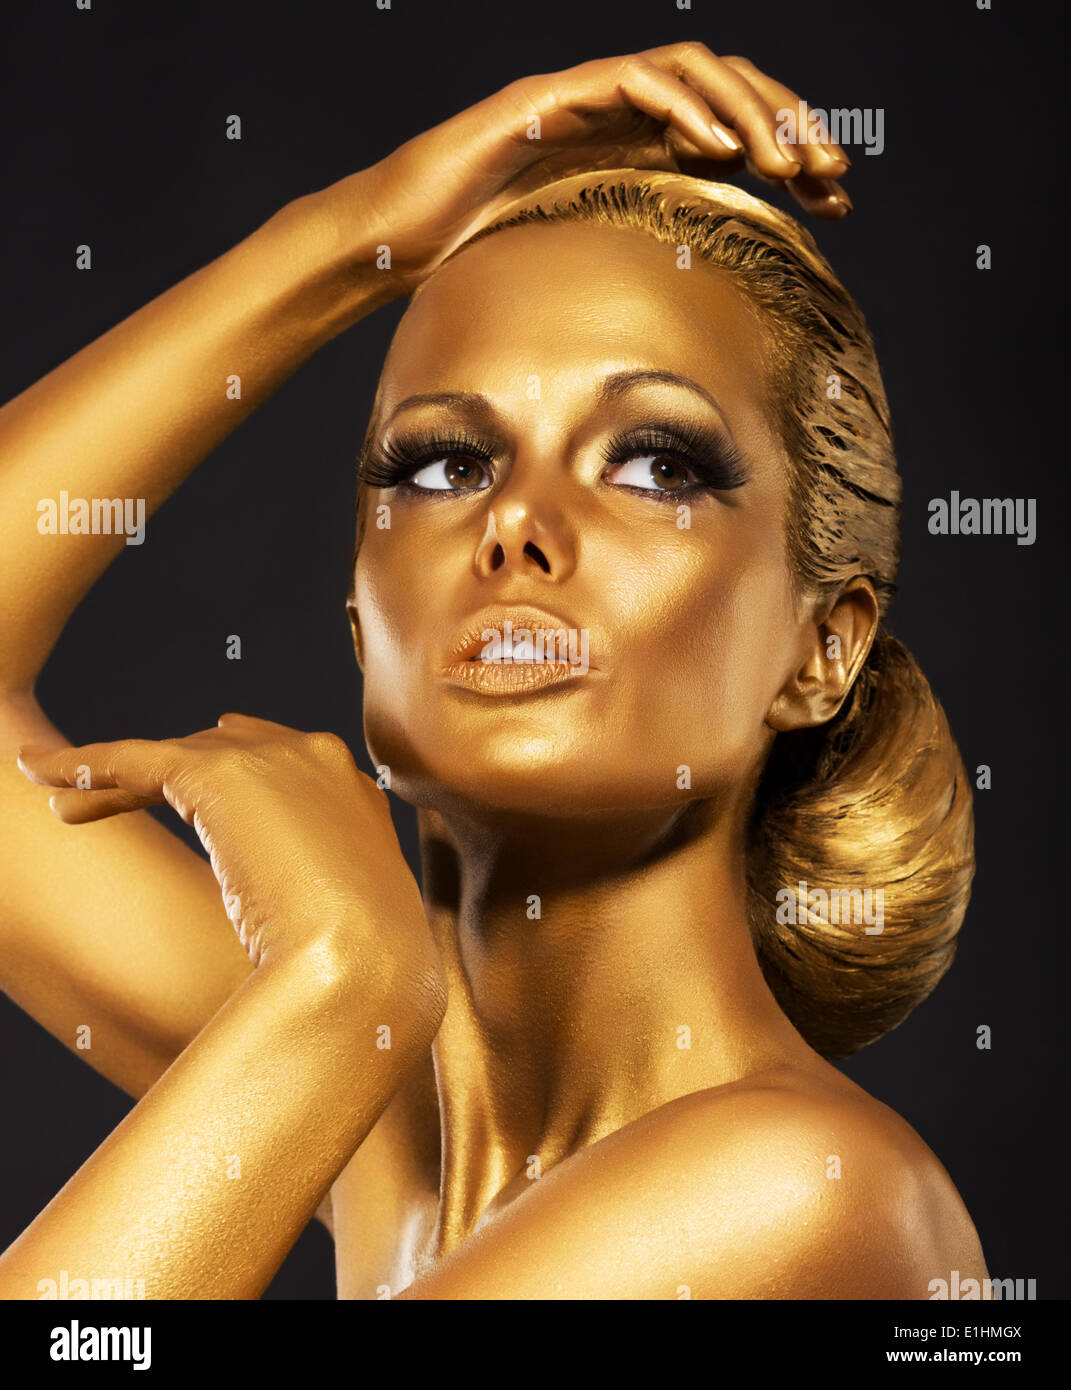 Reflexion. Portrait of Glossy Woman with Bright Golden Makeup. Bronze Bodypaint - Stock Image